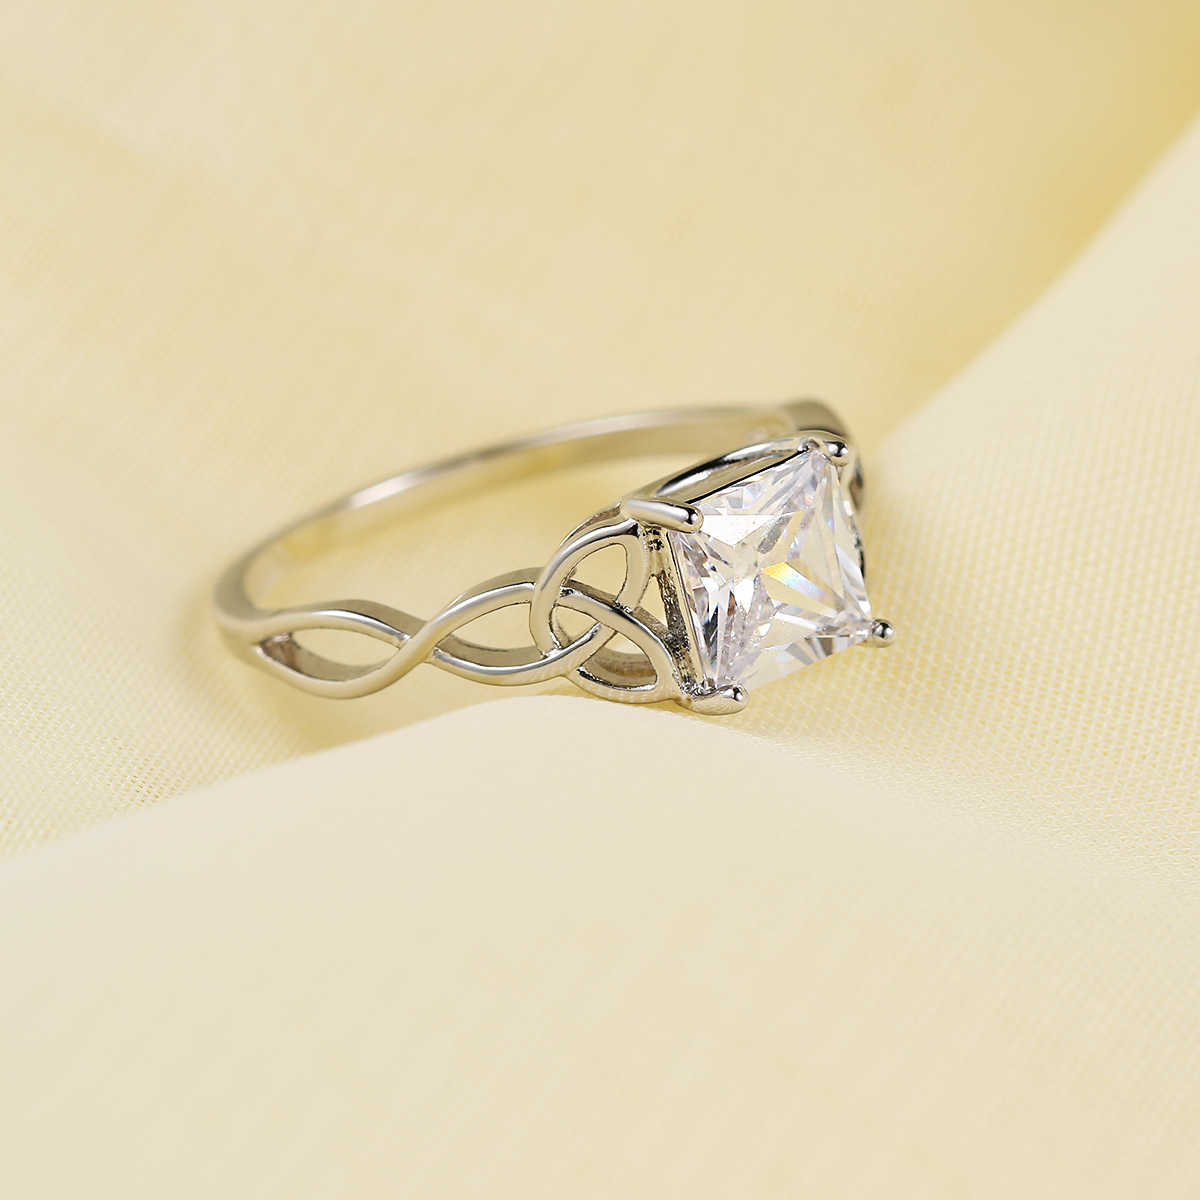 ZHOUYANG Ring For Women Thin Temperament Winding Wedding Engagement Ring Silver Color Cubic Zirconia Fashion Gift Jewelry DZR018